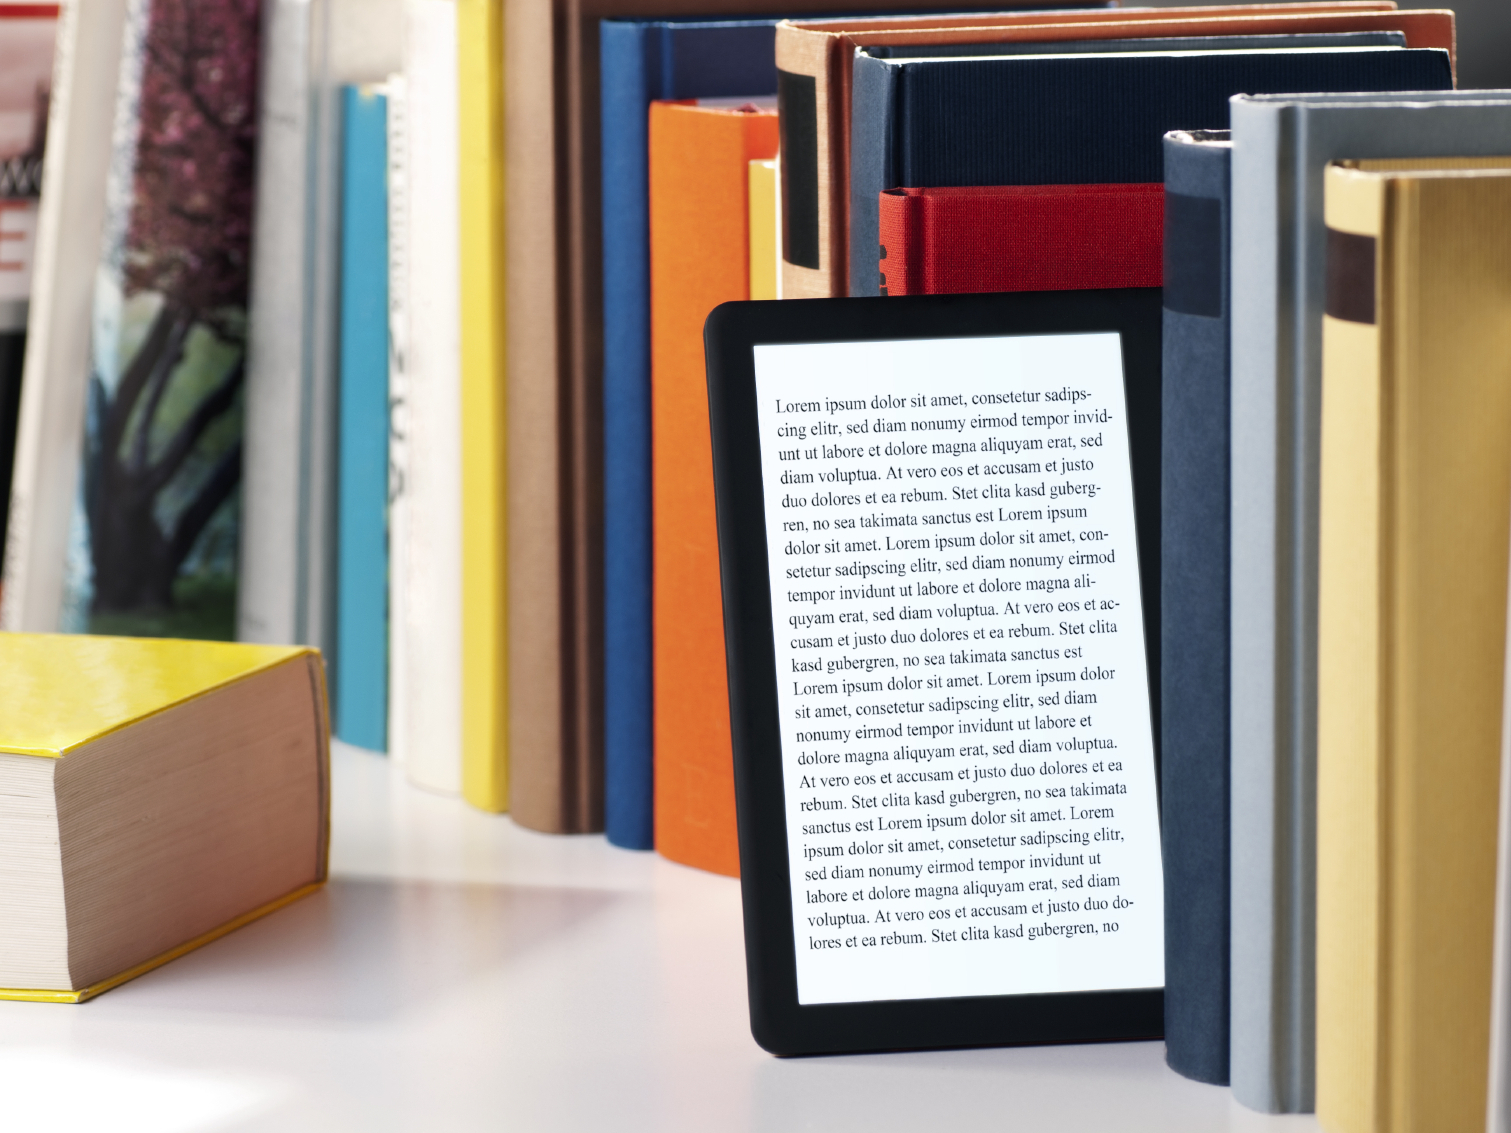 New E-Book Lending Service Aims To Be Netflix For Books